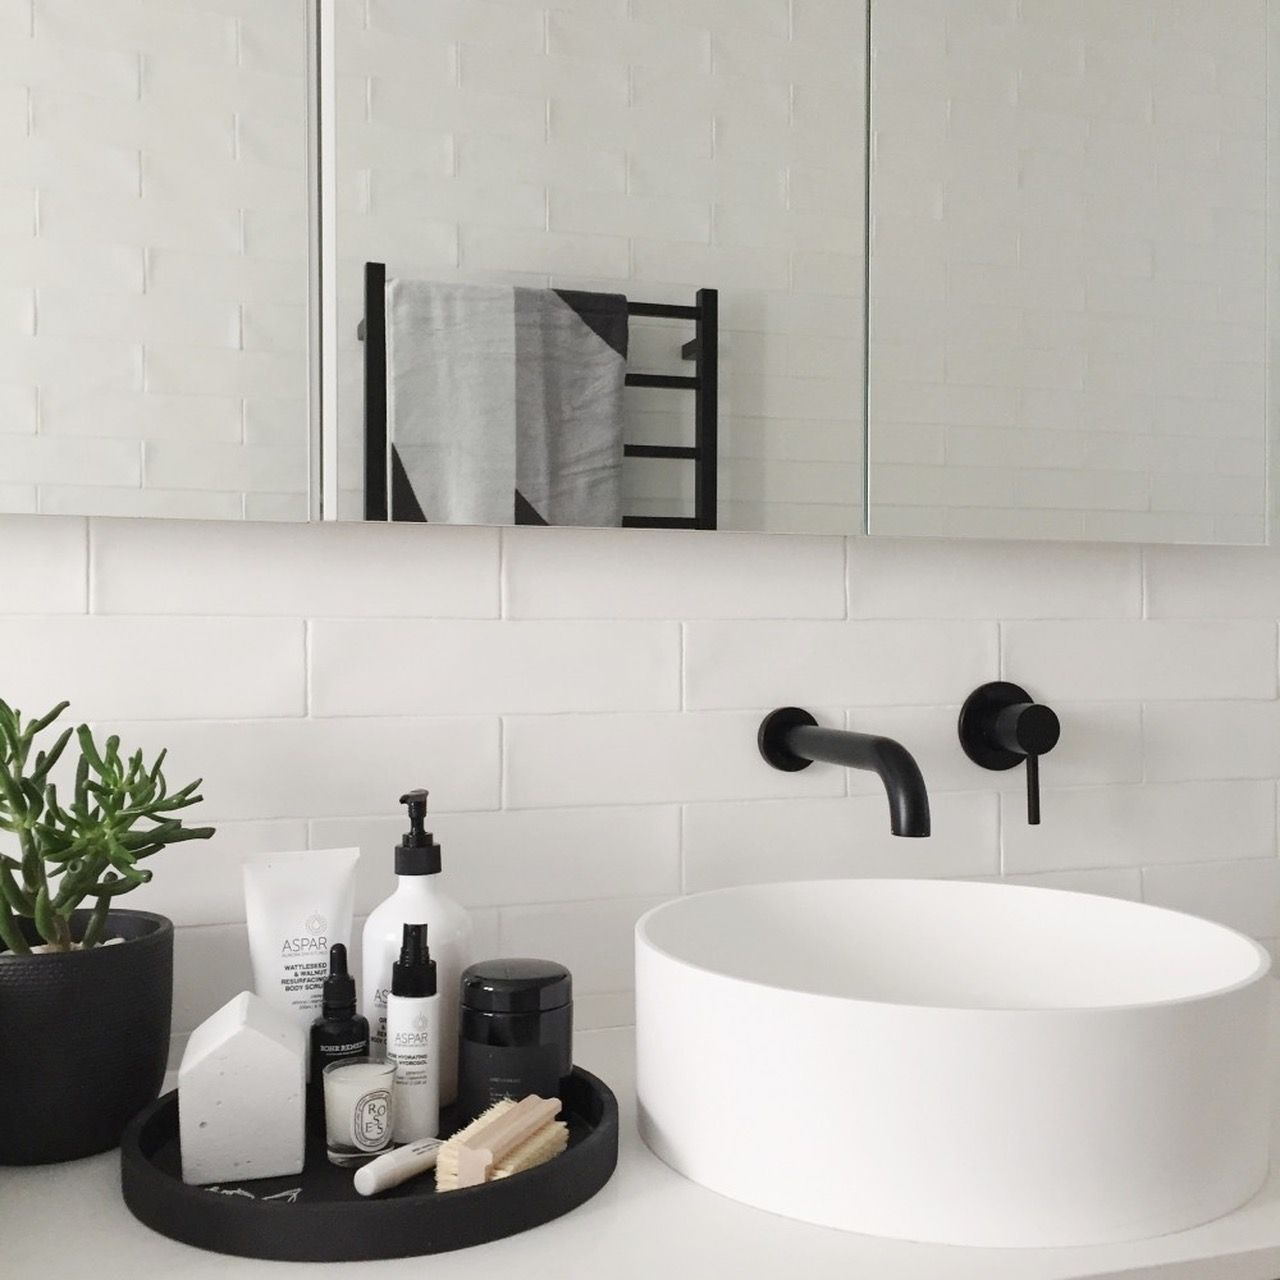 Black and white bathroom styling featuring black